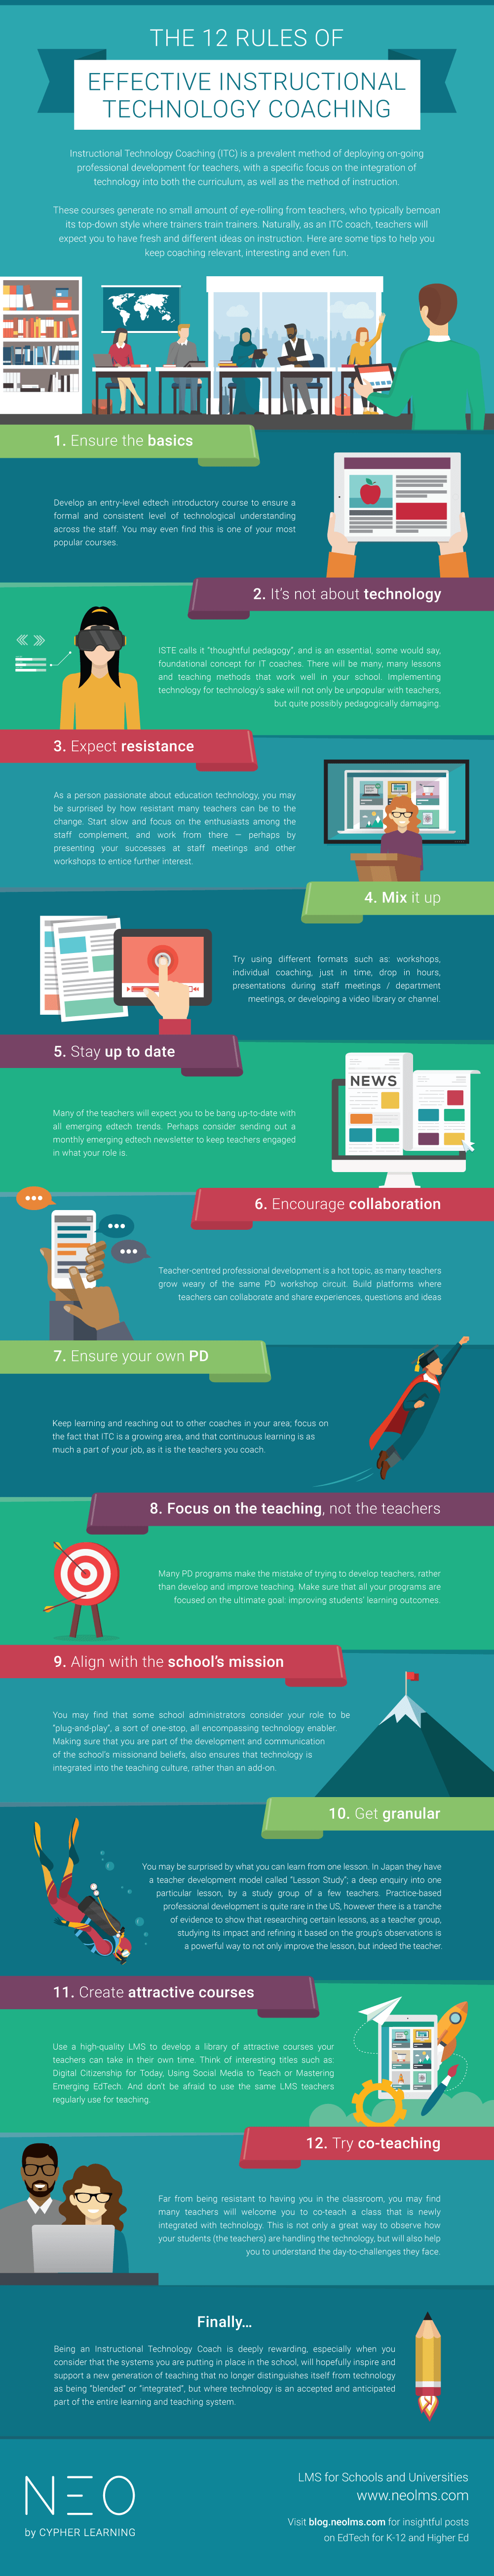 The 12 Rules Of Effective Instructional Technology Coaching Infographic